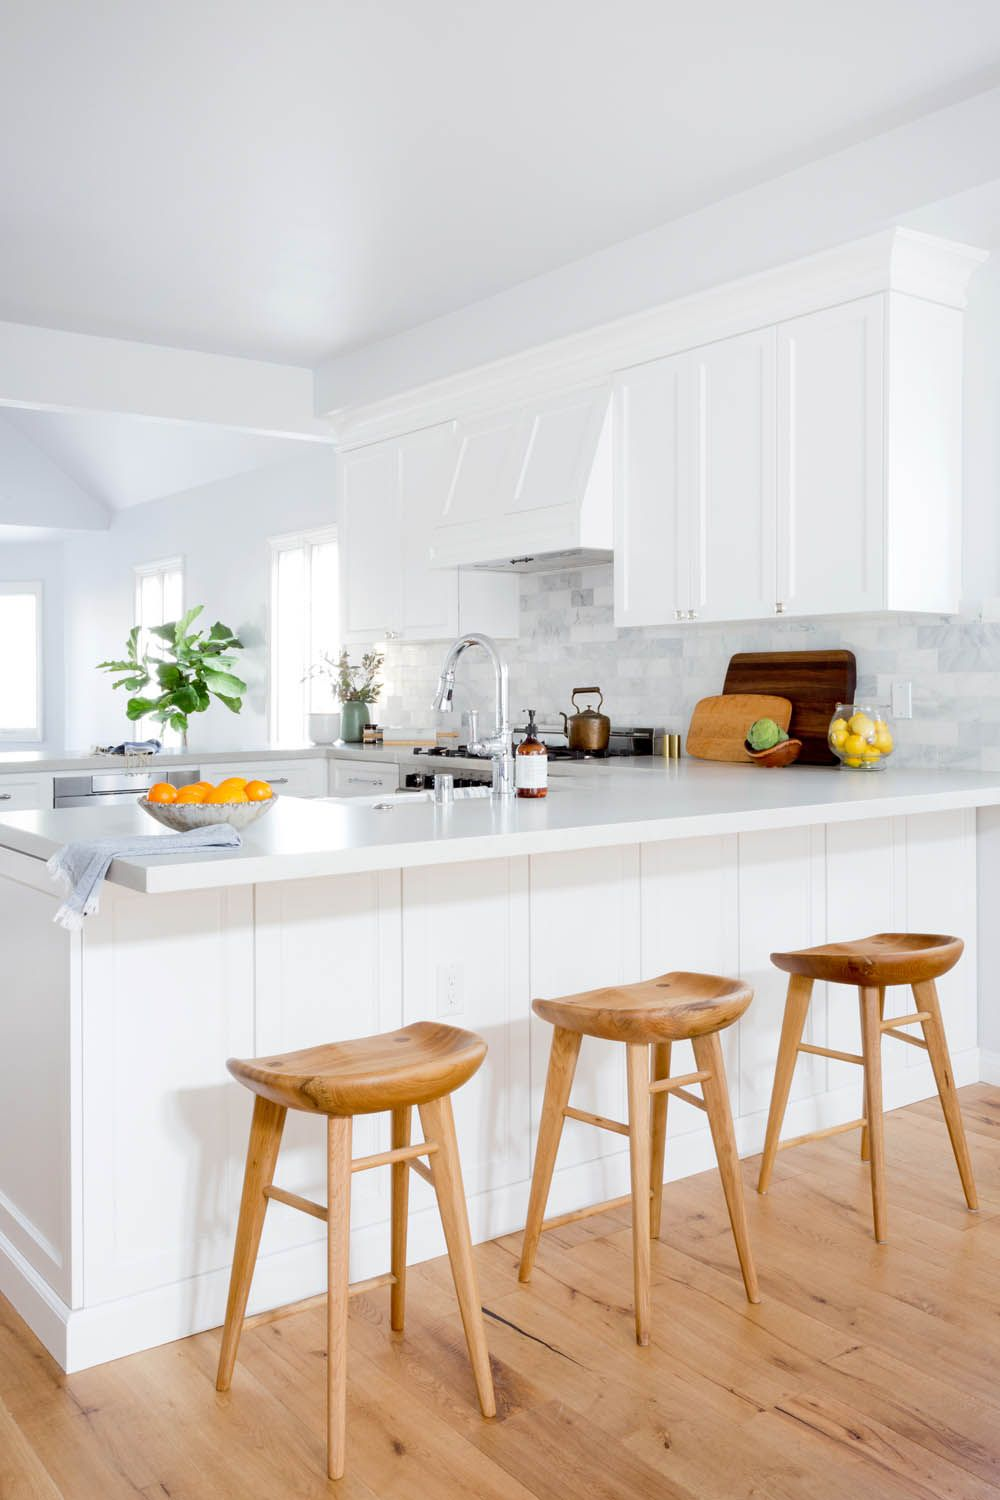 Clic all white kitchen with wood stools // A Cape Cod in ... Cape Cod Kitchen Design Ideas Html on mother in law suite kitchen ideas, prairie kitchen design ideas, peninsula kitchen design ideas, 2014 kitchen design ideas, fixer upper kitchen design ideas, farmhouse kitchen design ideas, cherry cabinet kitchen design ideas, retro small kitchen design ideas, cape cod cottage kitchen ideas, tuscan kitchen design ideas, modular kitchen design ideas, cottage kitchen design ideas, 10 x 10 kitchen design ideas, double wide kitchen design ideas, 2015 kitchen design ideas, rustic birch kitchen design ideas, contemporary kitchen design ideas, yellow kitchen wall color ideas, cape house kitchen, blue gray kitchen cabinets color ideas,